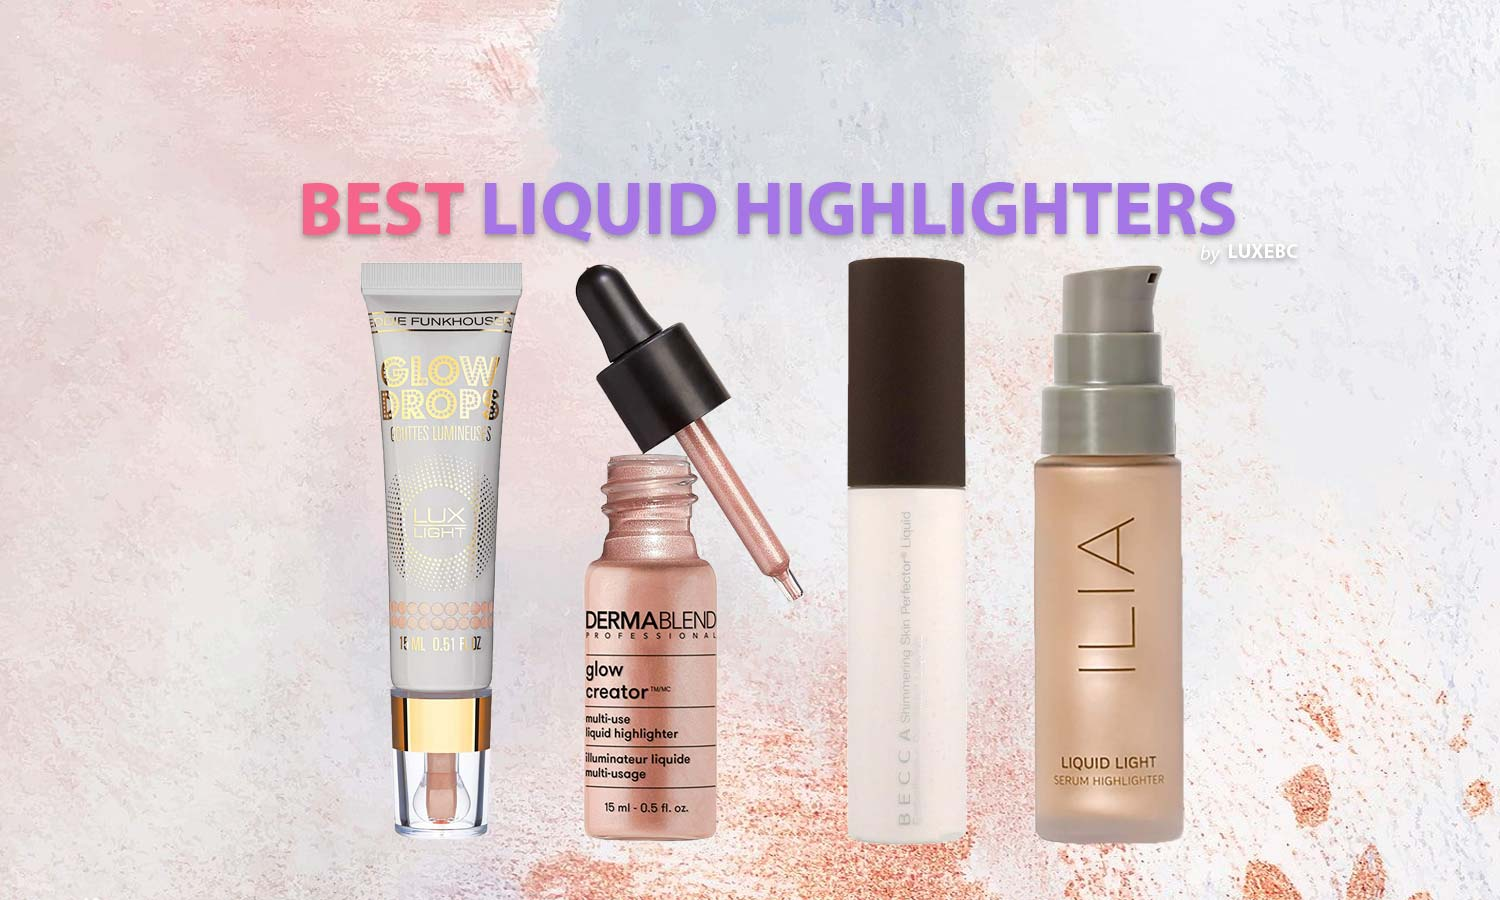 Best liquid highlighters